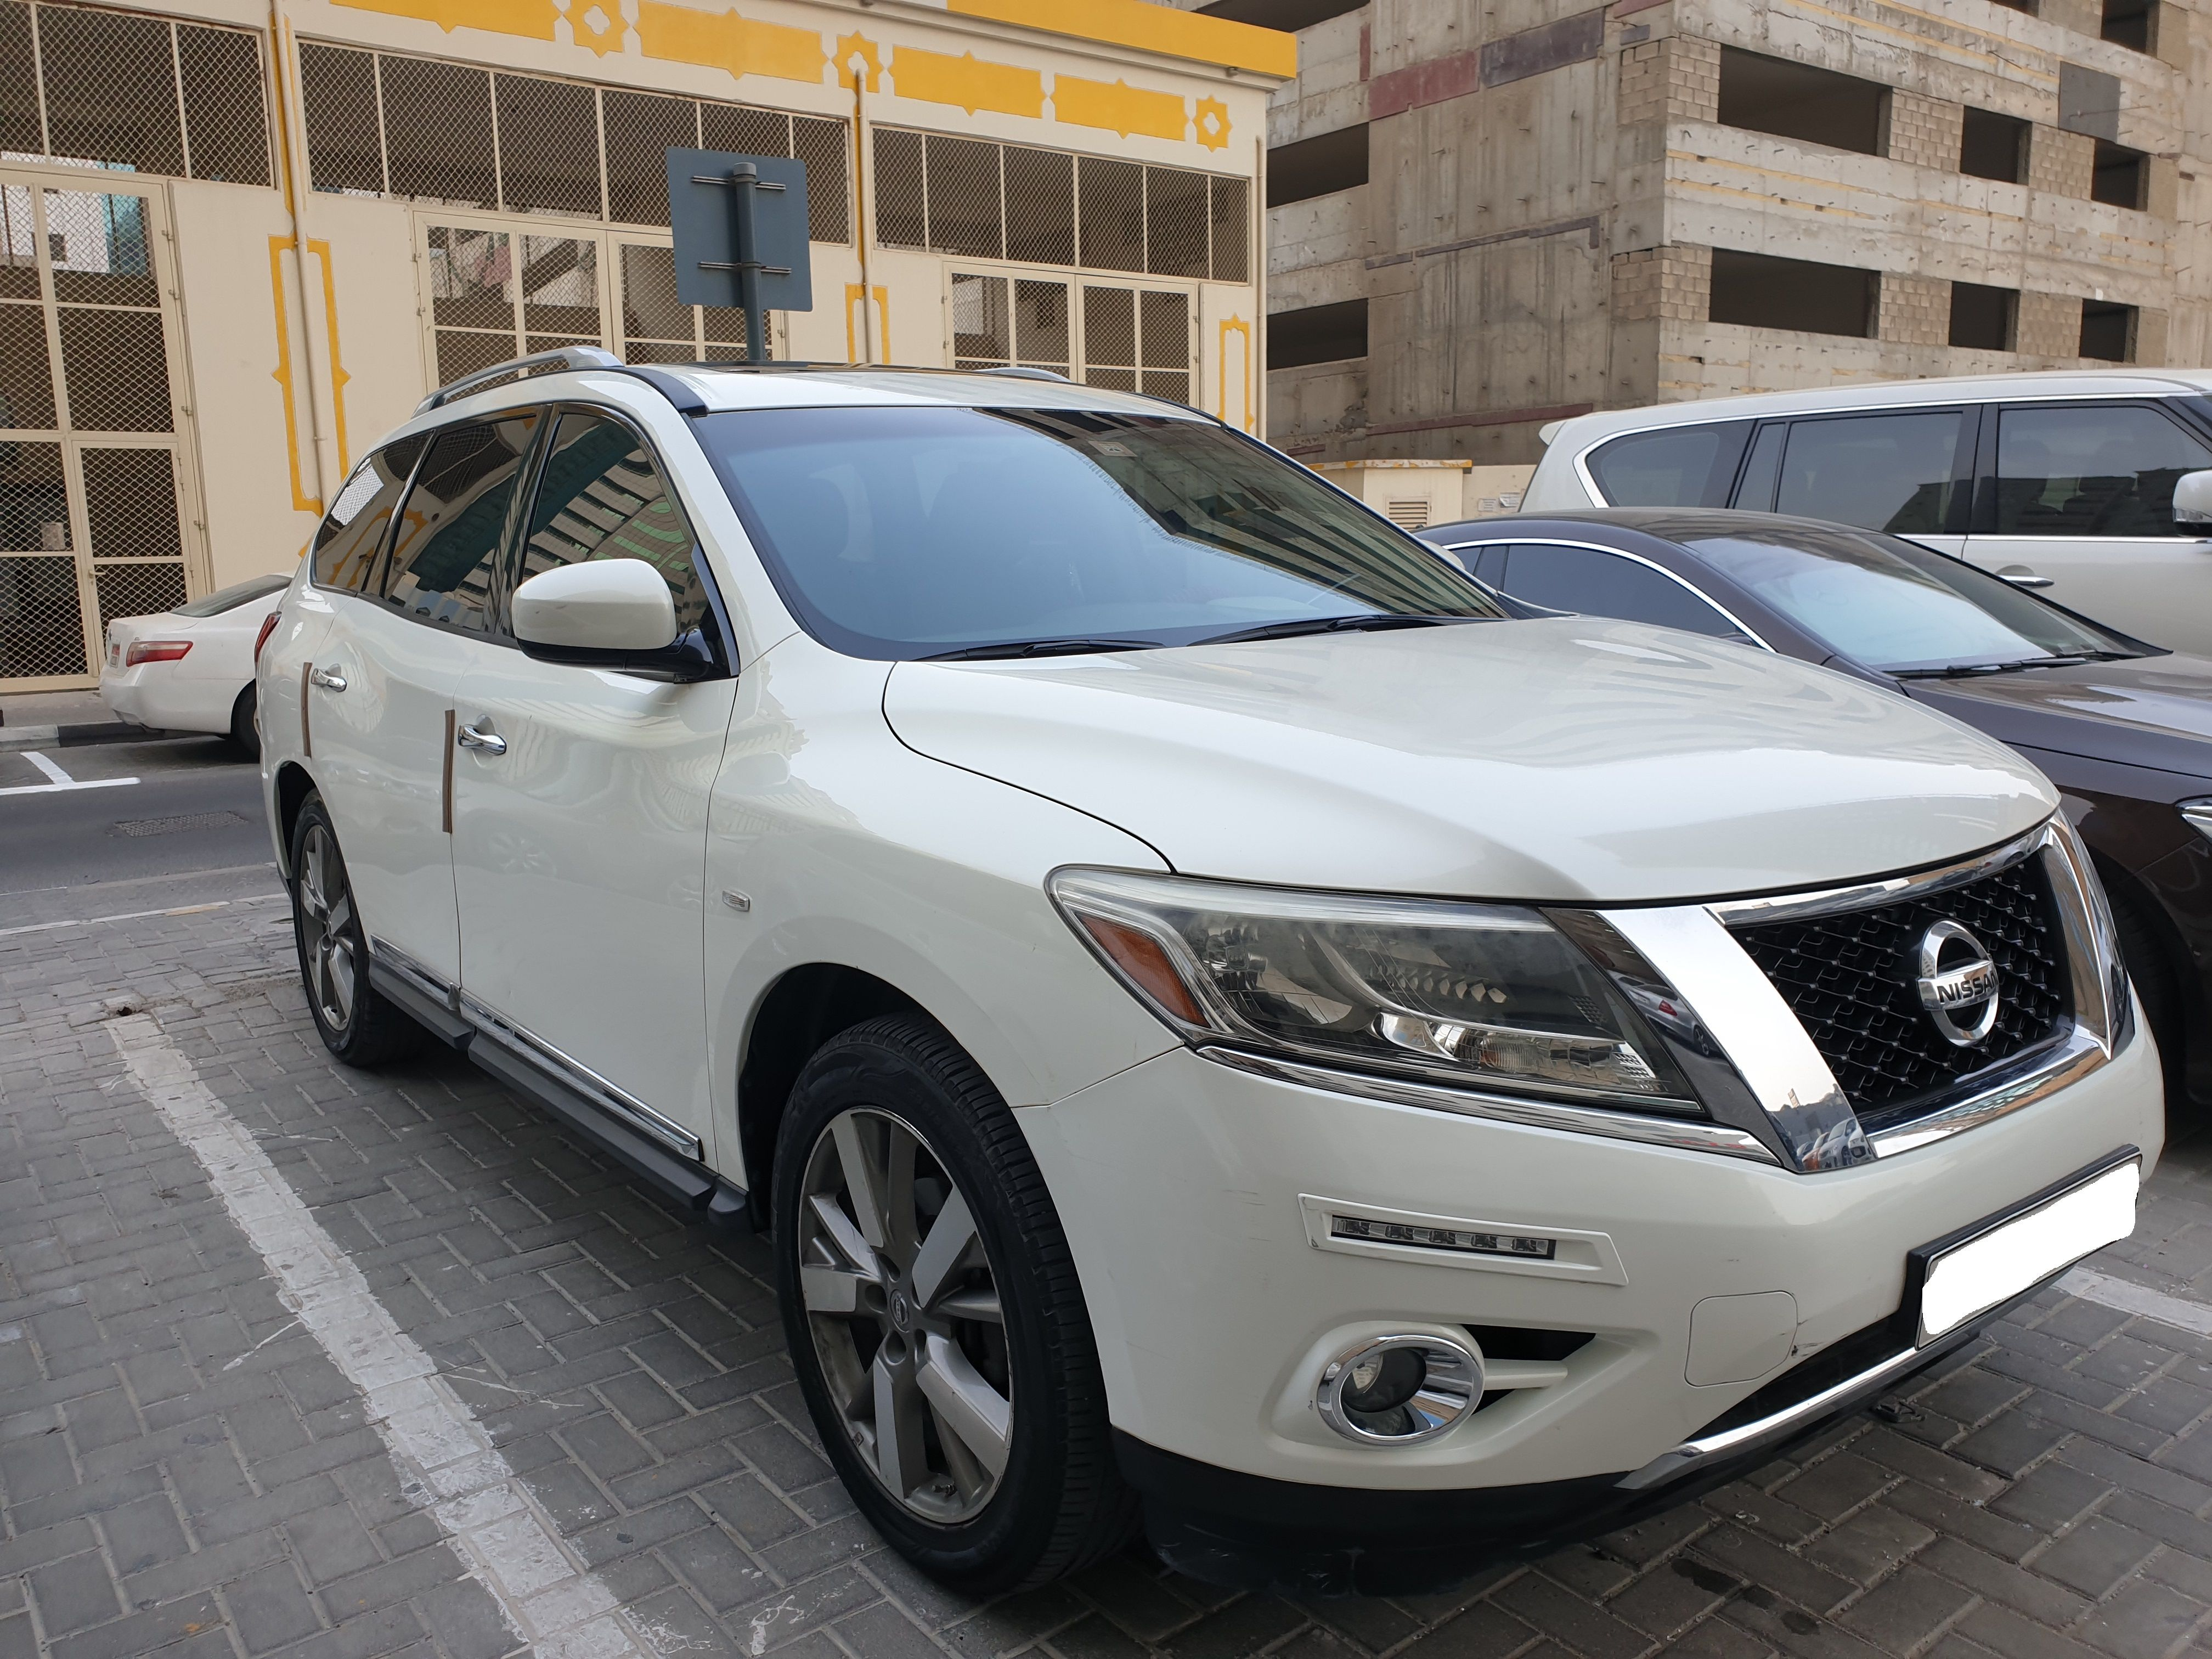 Nissan Pathfinder 2014 GCC MID in Sharjah (With images